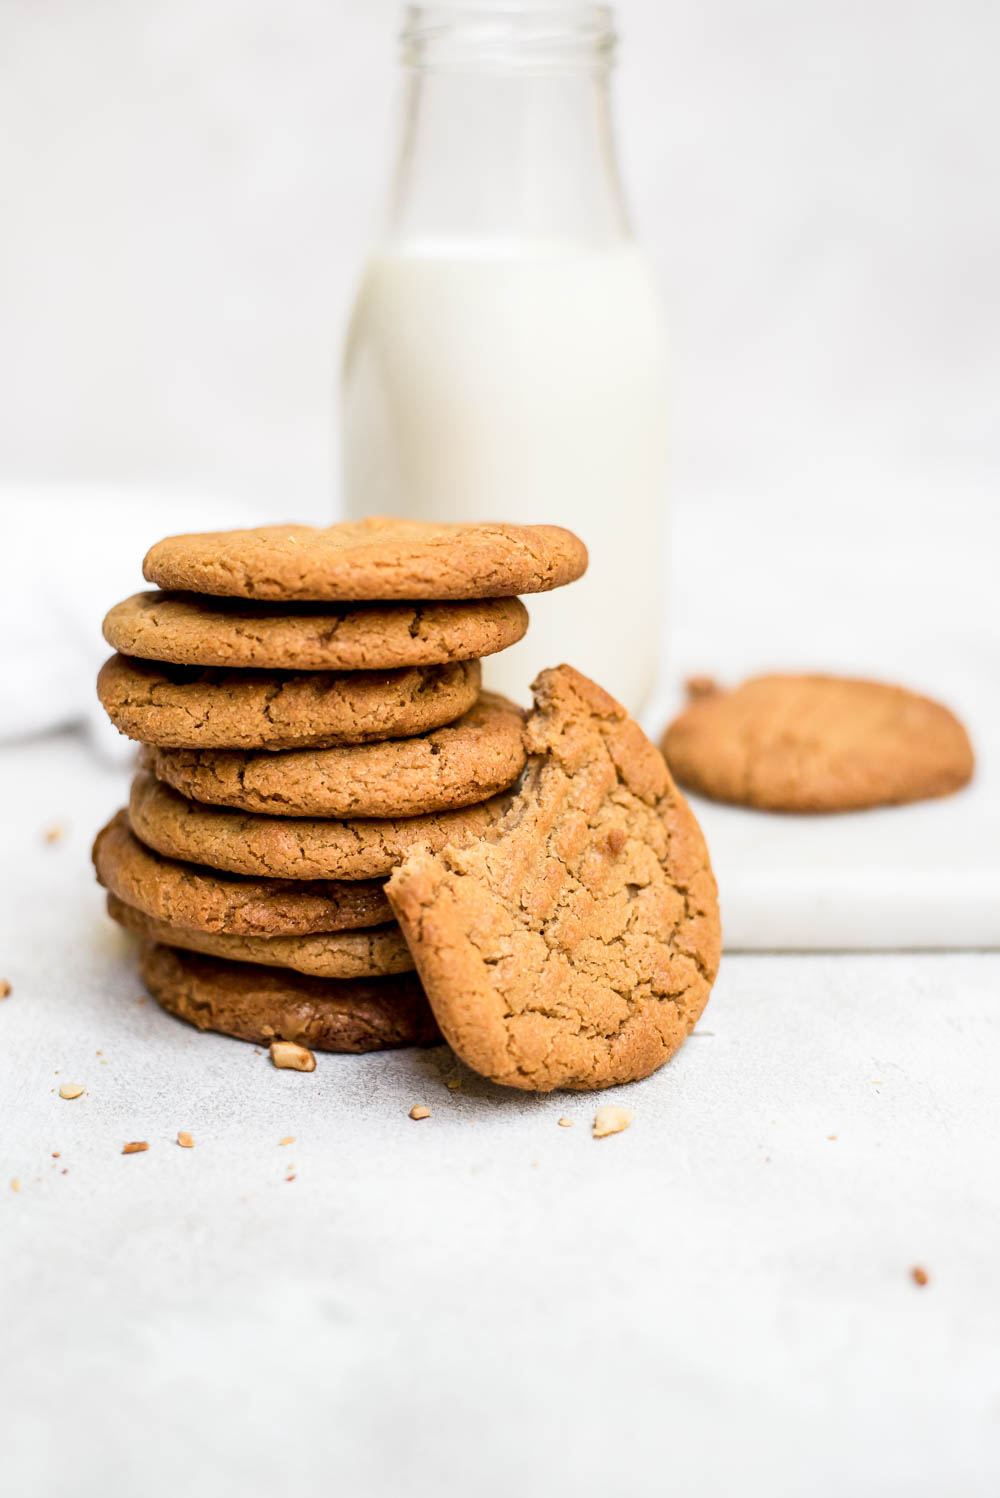 3 ingredient peanut butter cookies stacked with bite eaten from one cookie